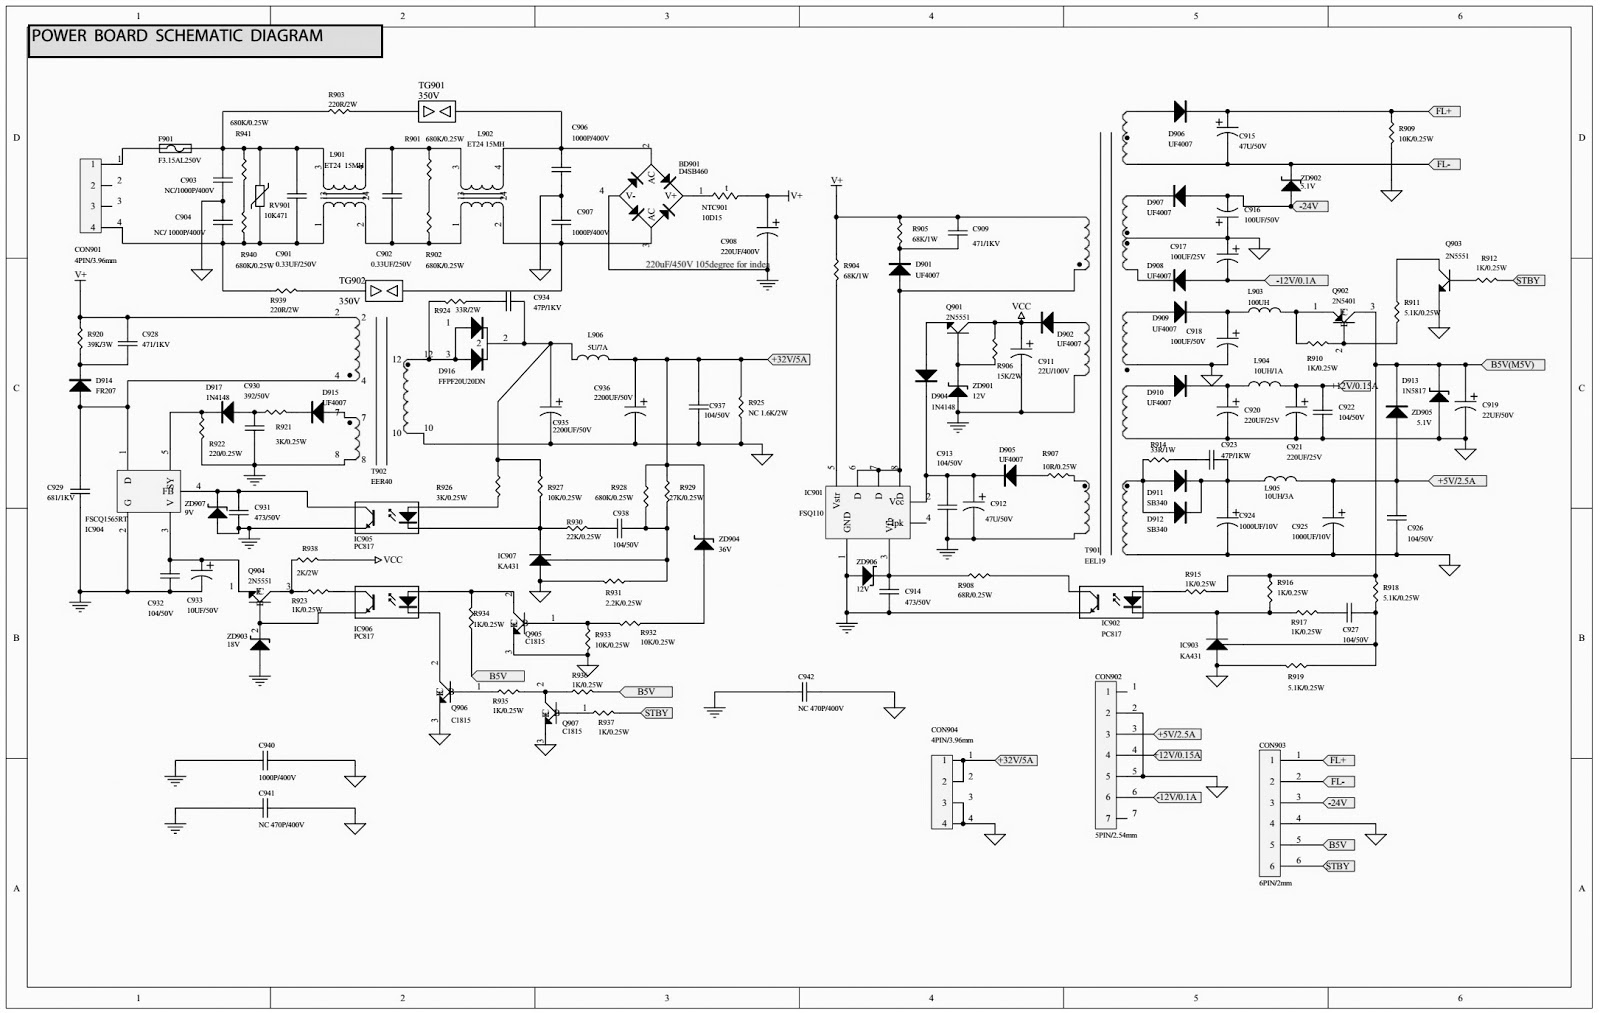 Whole House Vacuum Wiring Diagram Diagrams Of Collection Electrical Blueprints Home Network Most Commonly